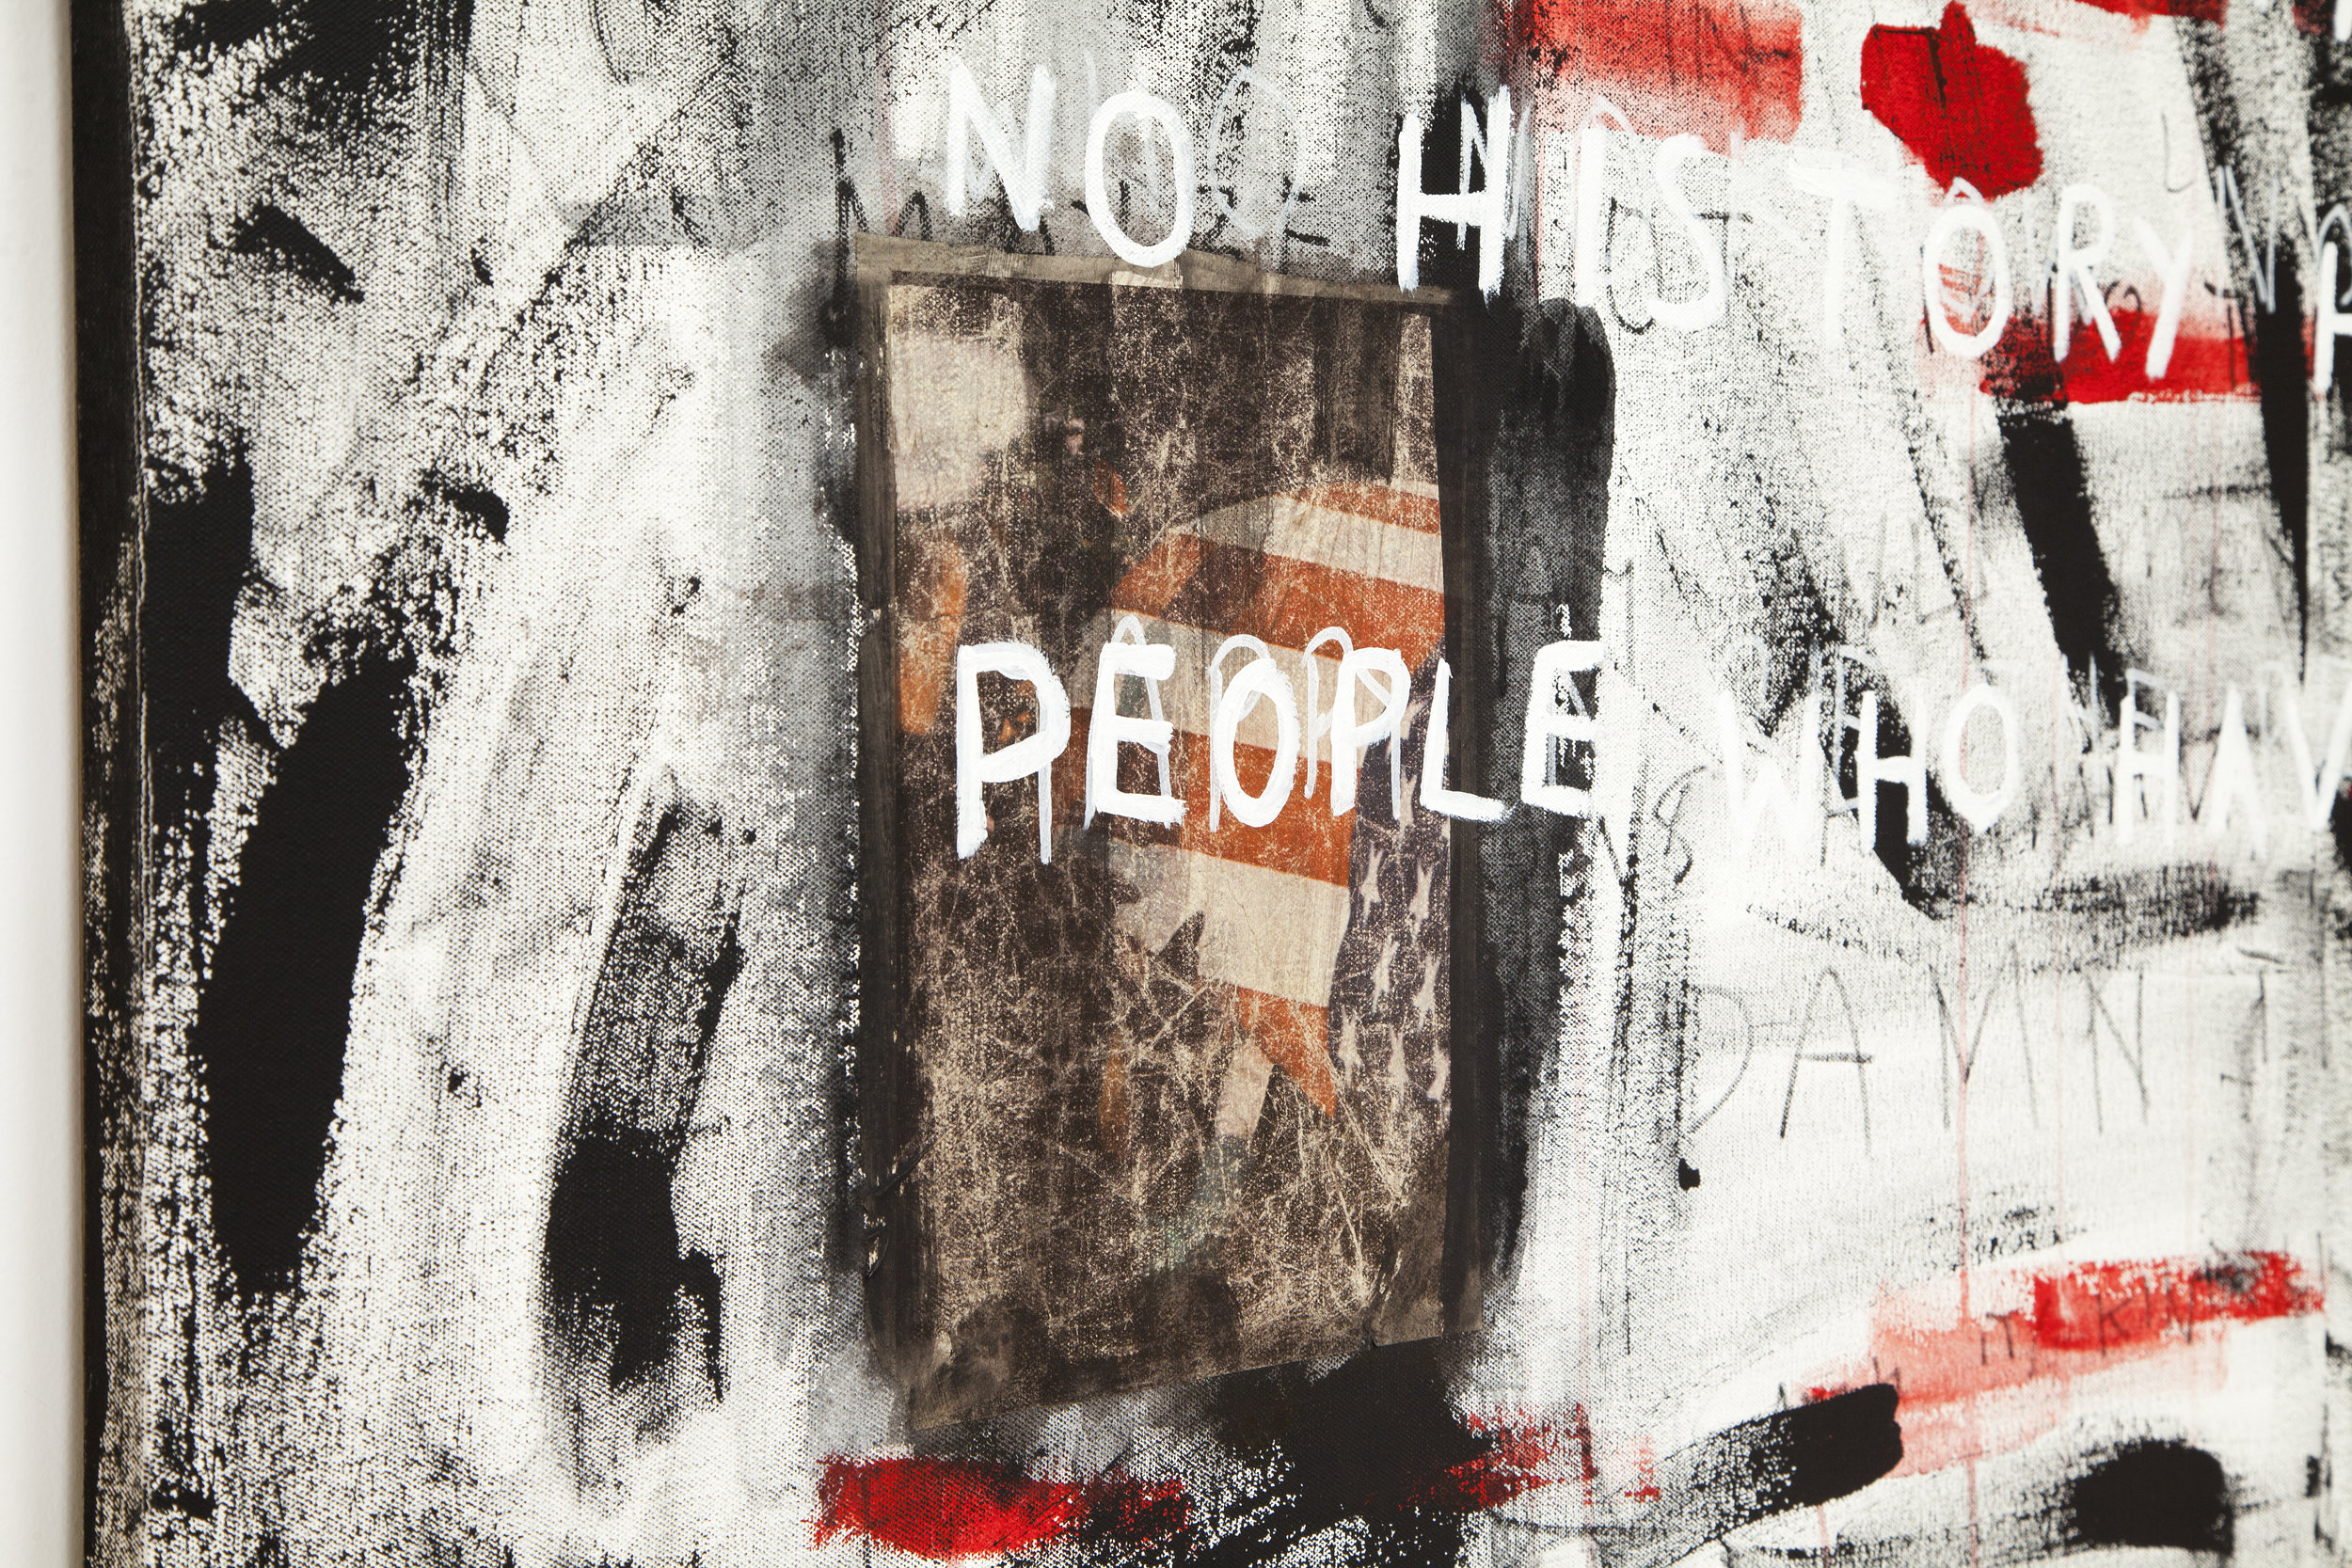 happy are the people who have no history too  (detail), 2018, acrylic and inkjet prints on canvas, 58 x 64 in